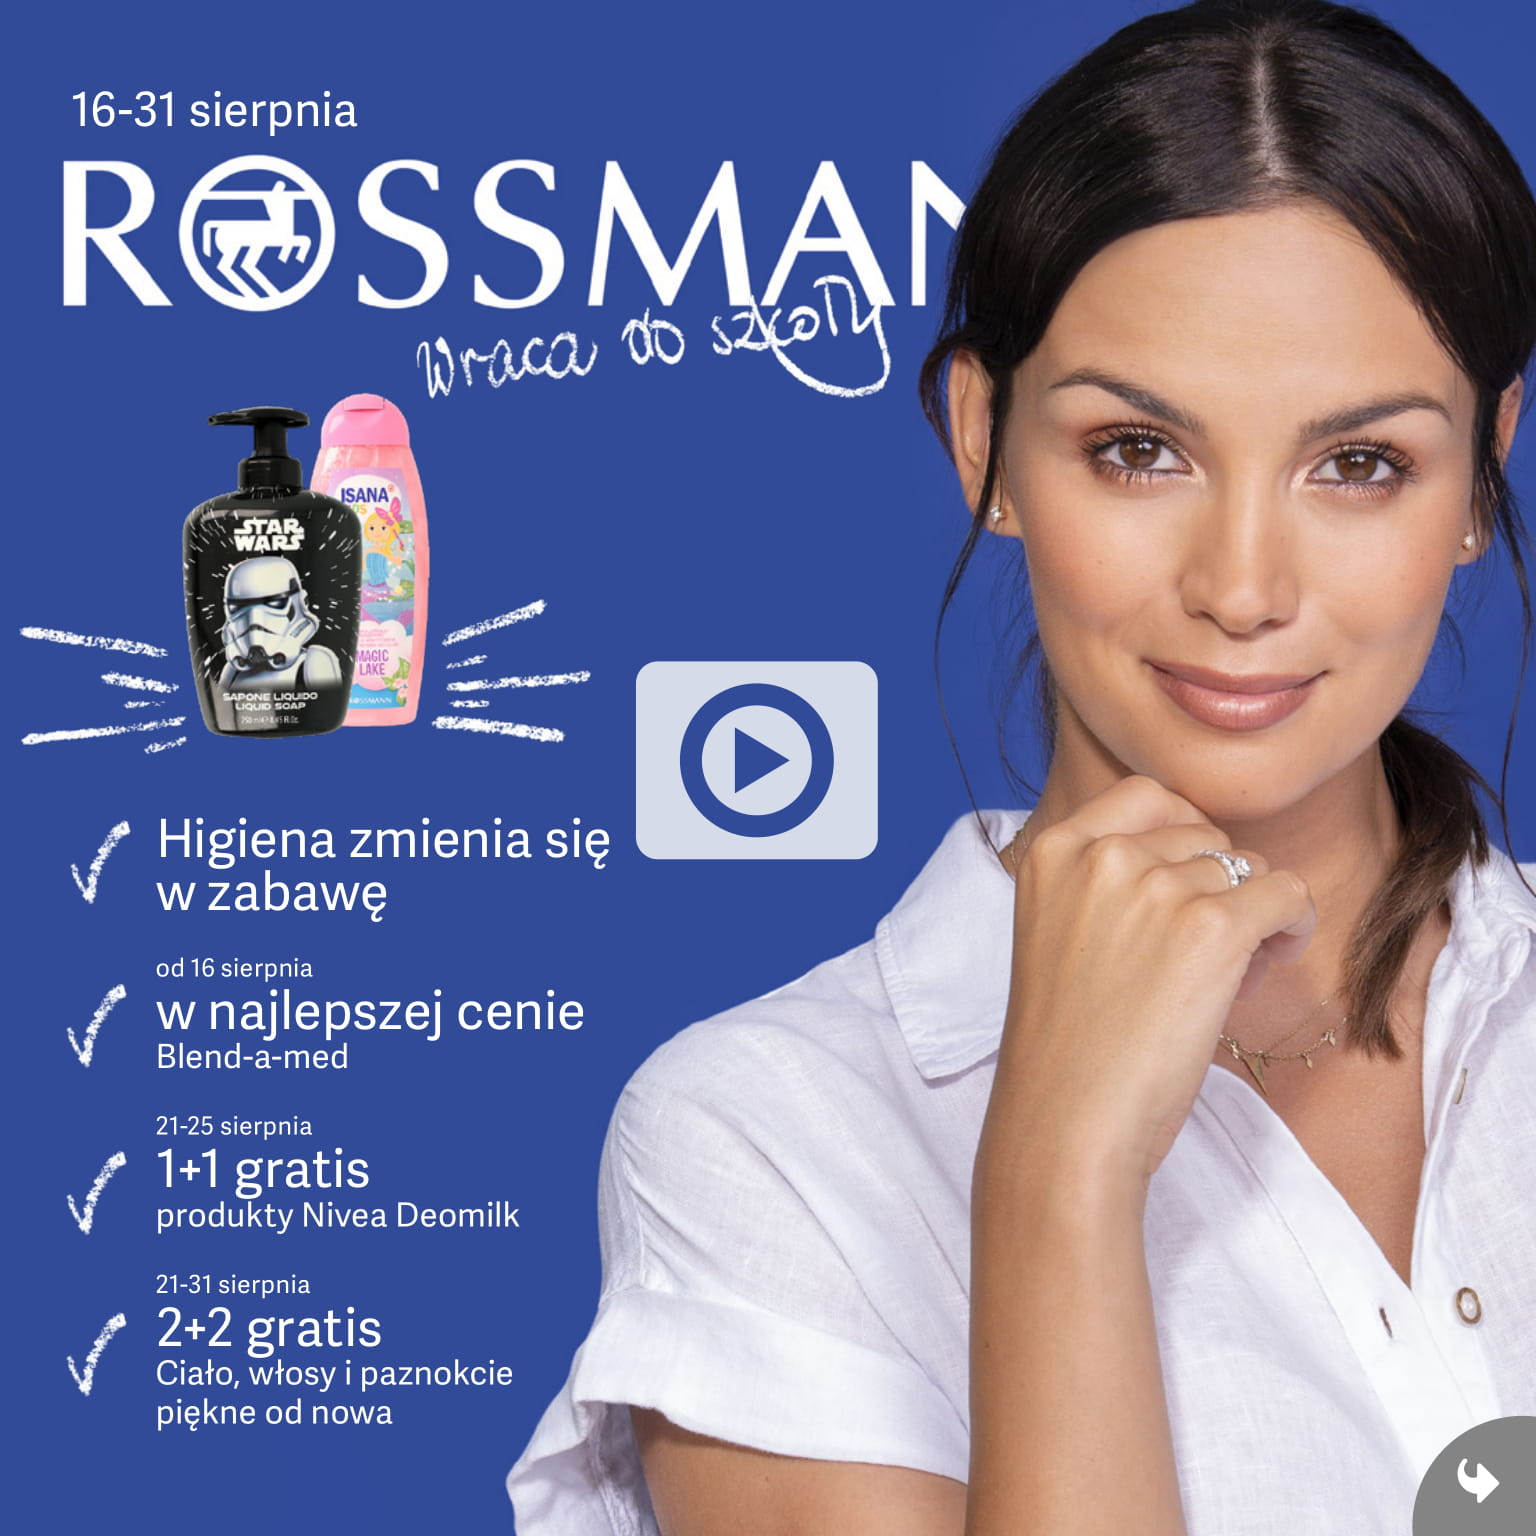 Rossmann gazetka od 16.08 do 31.08.2019